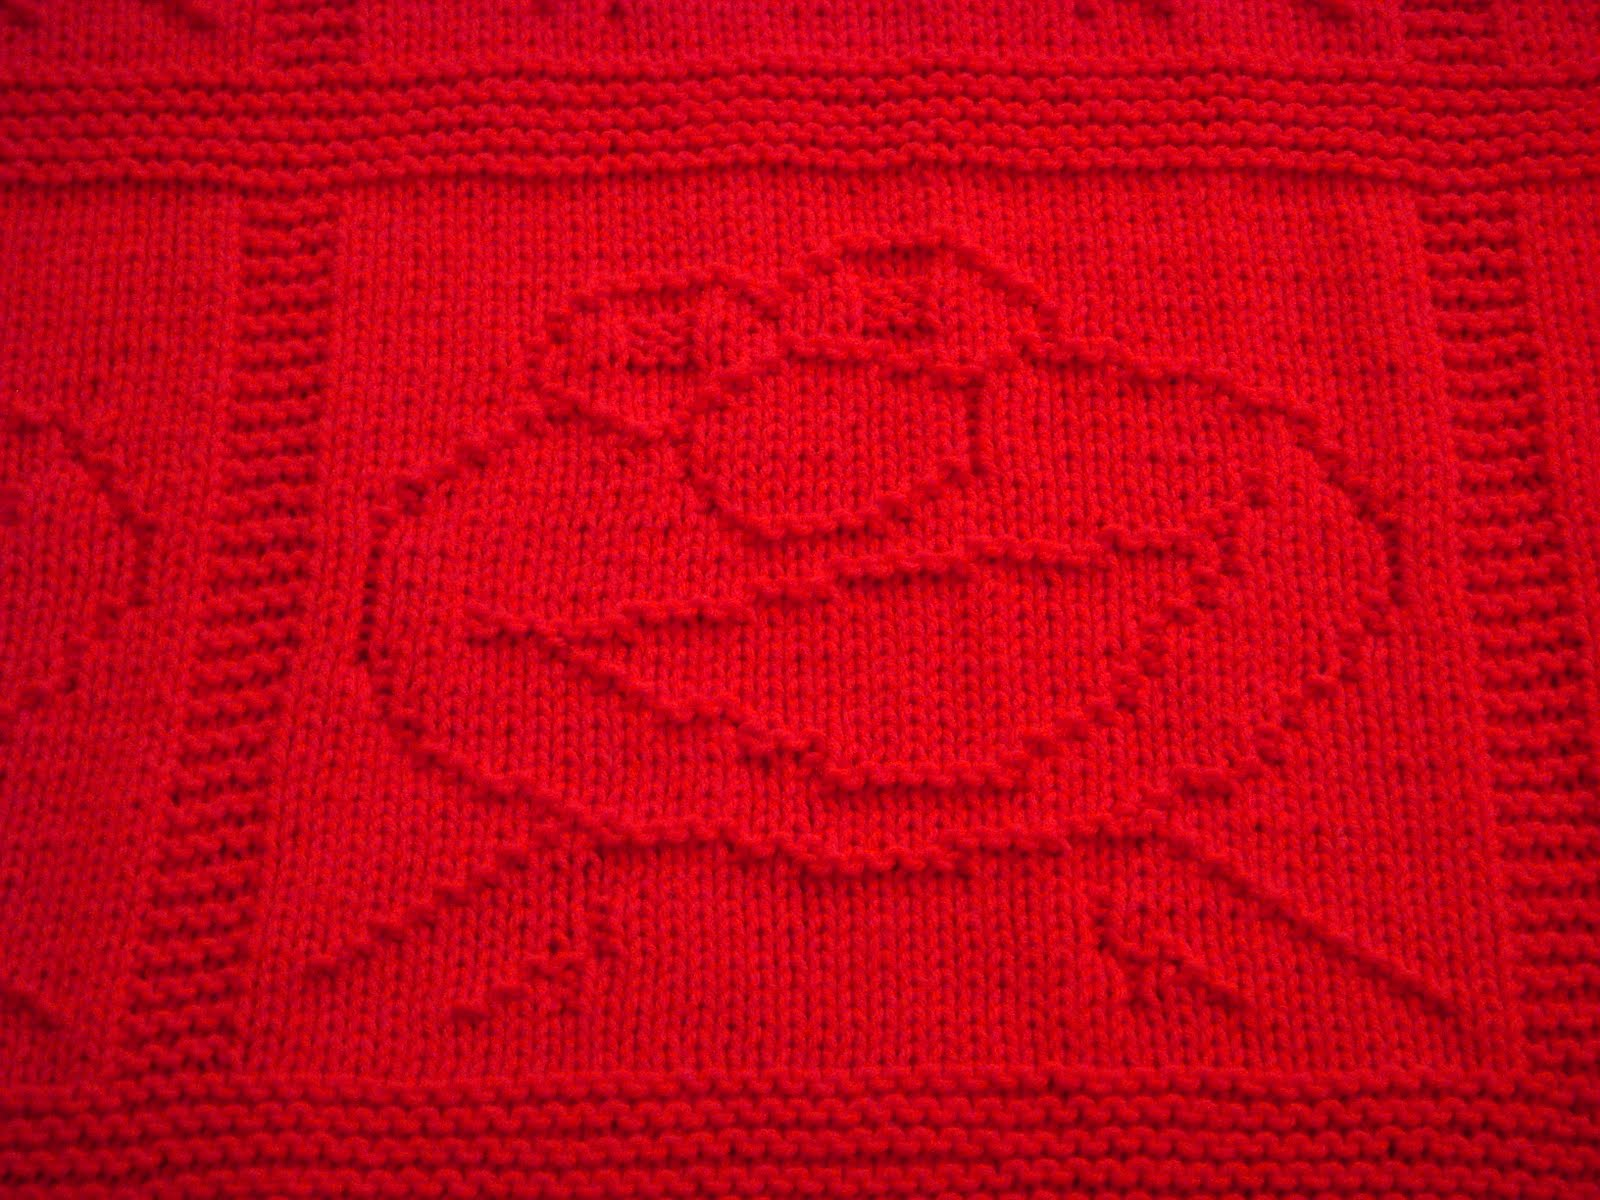 The knitting nanny pictures of the elmo blanket pictures of the elmo blanket bankloansurffo Gallery